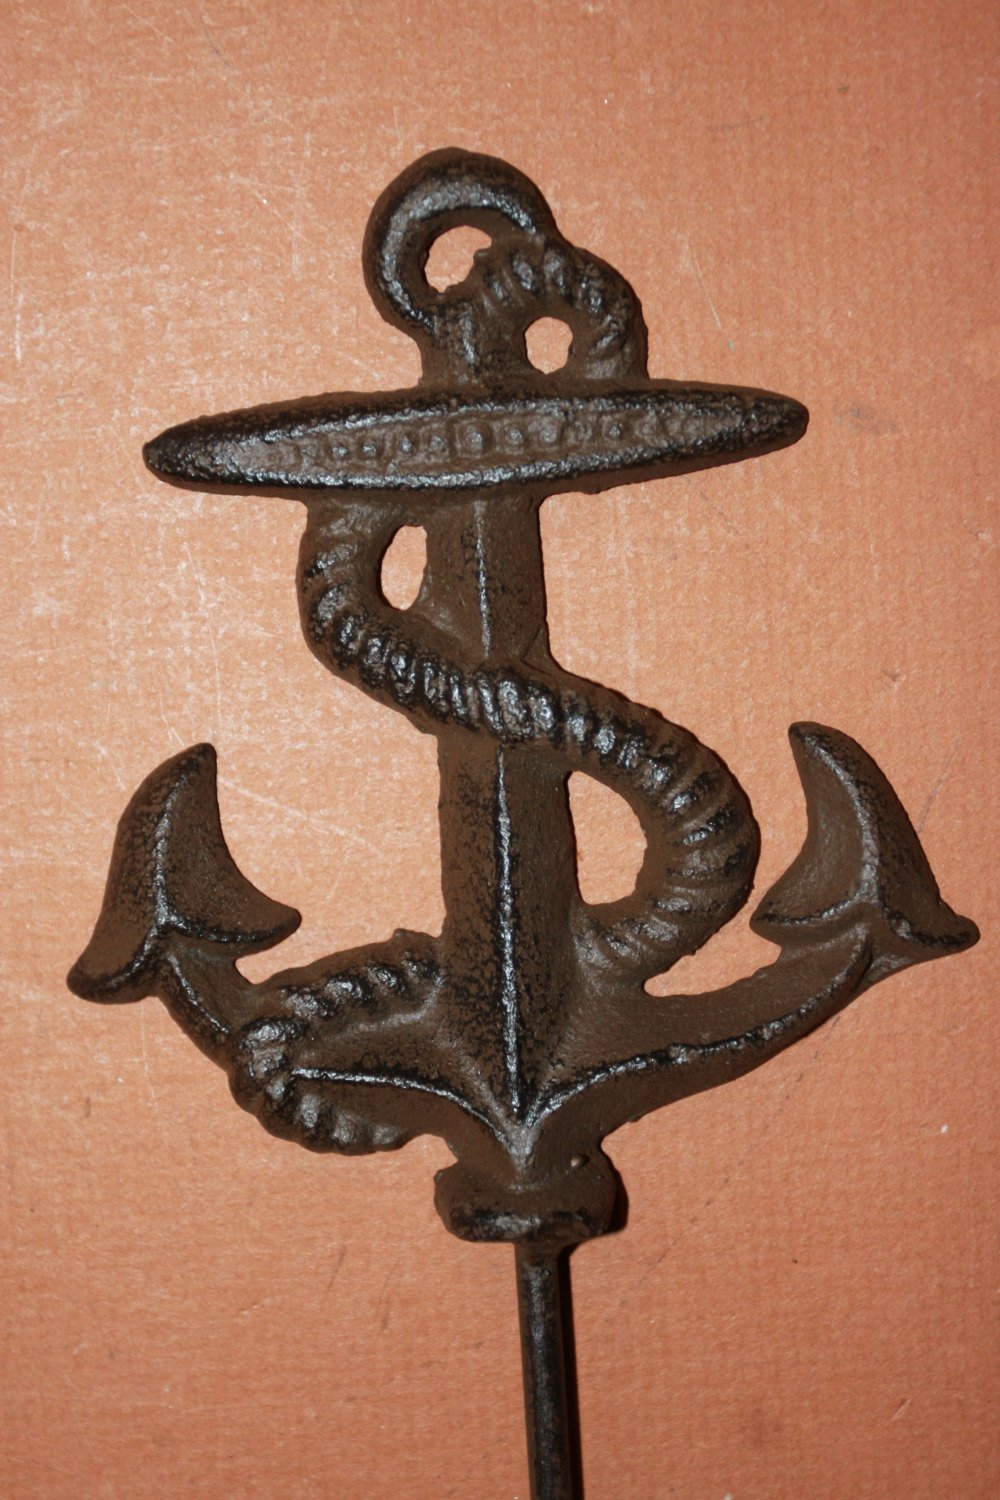 4 pieces) Set of 4 cast iron anchor hooks,6 3/4 inches, free shipping, anchor coat hook, anchor hat hook, anchor towel hook, N-48